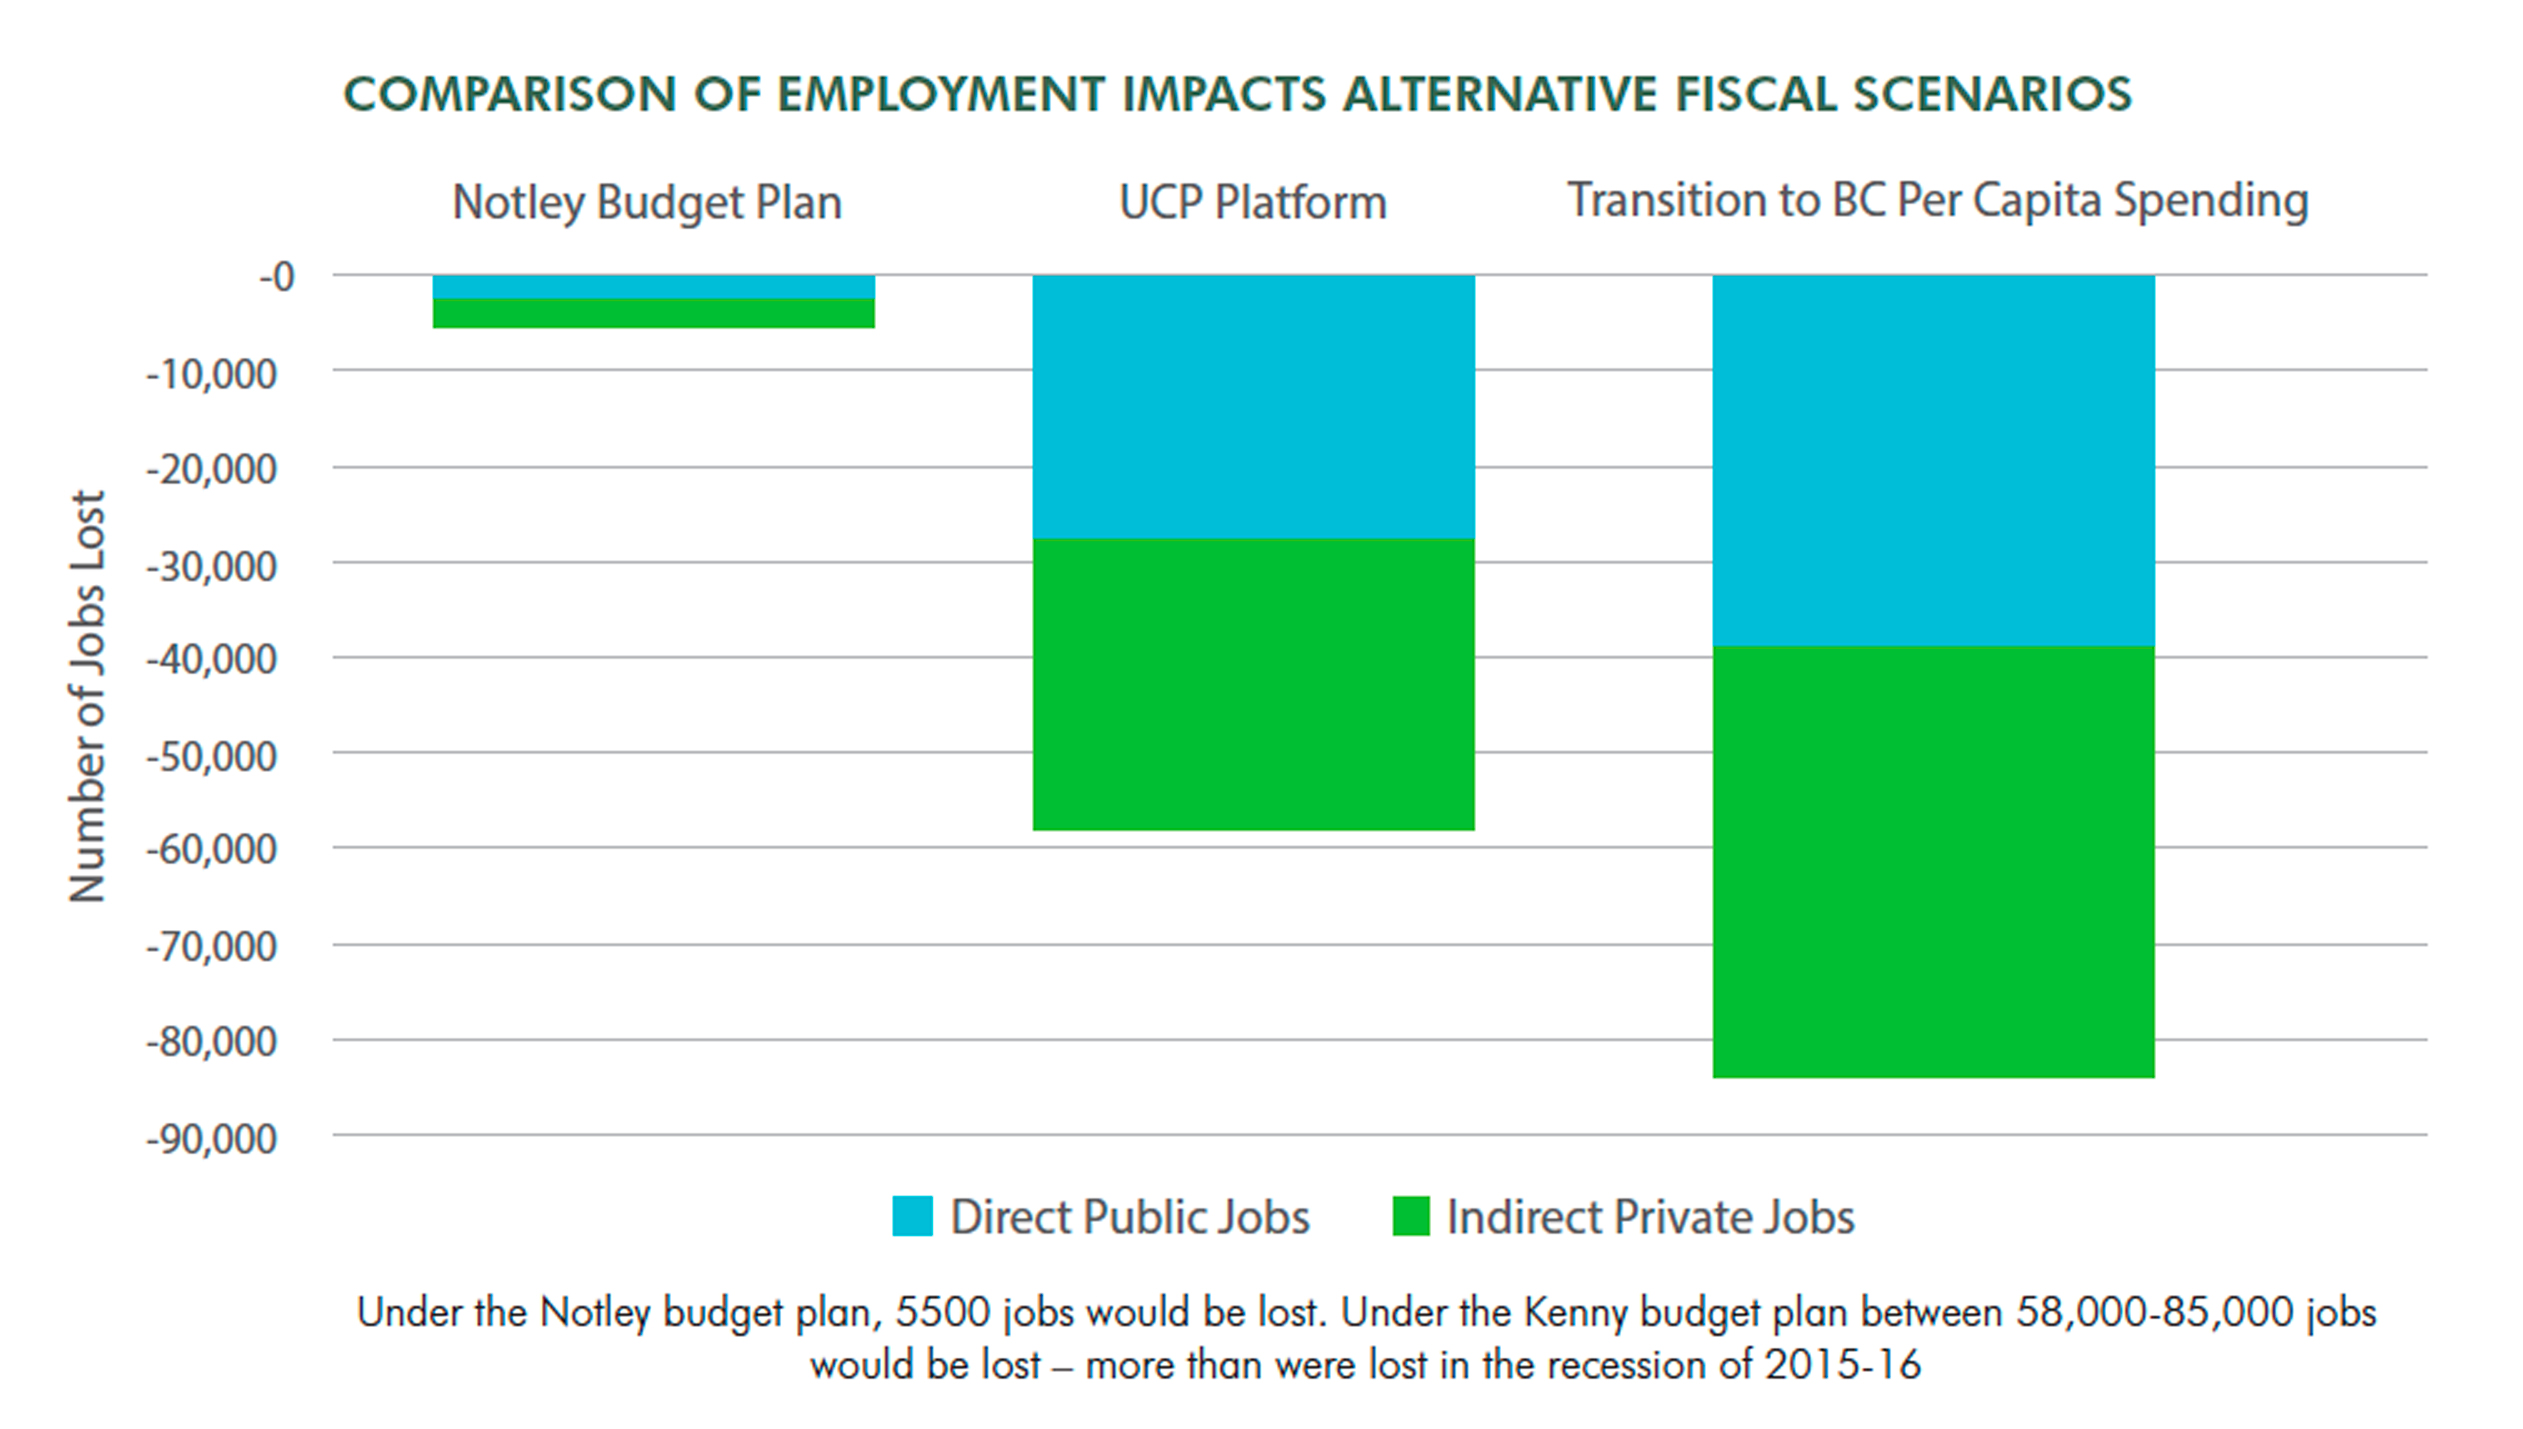 Comparison of Employment Impact Scenarios